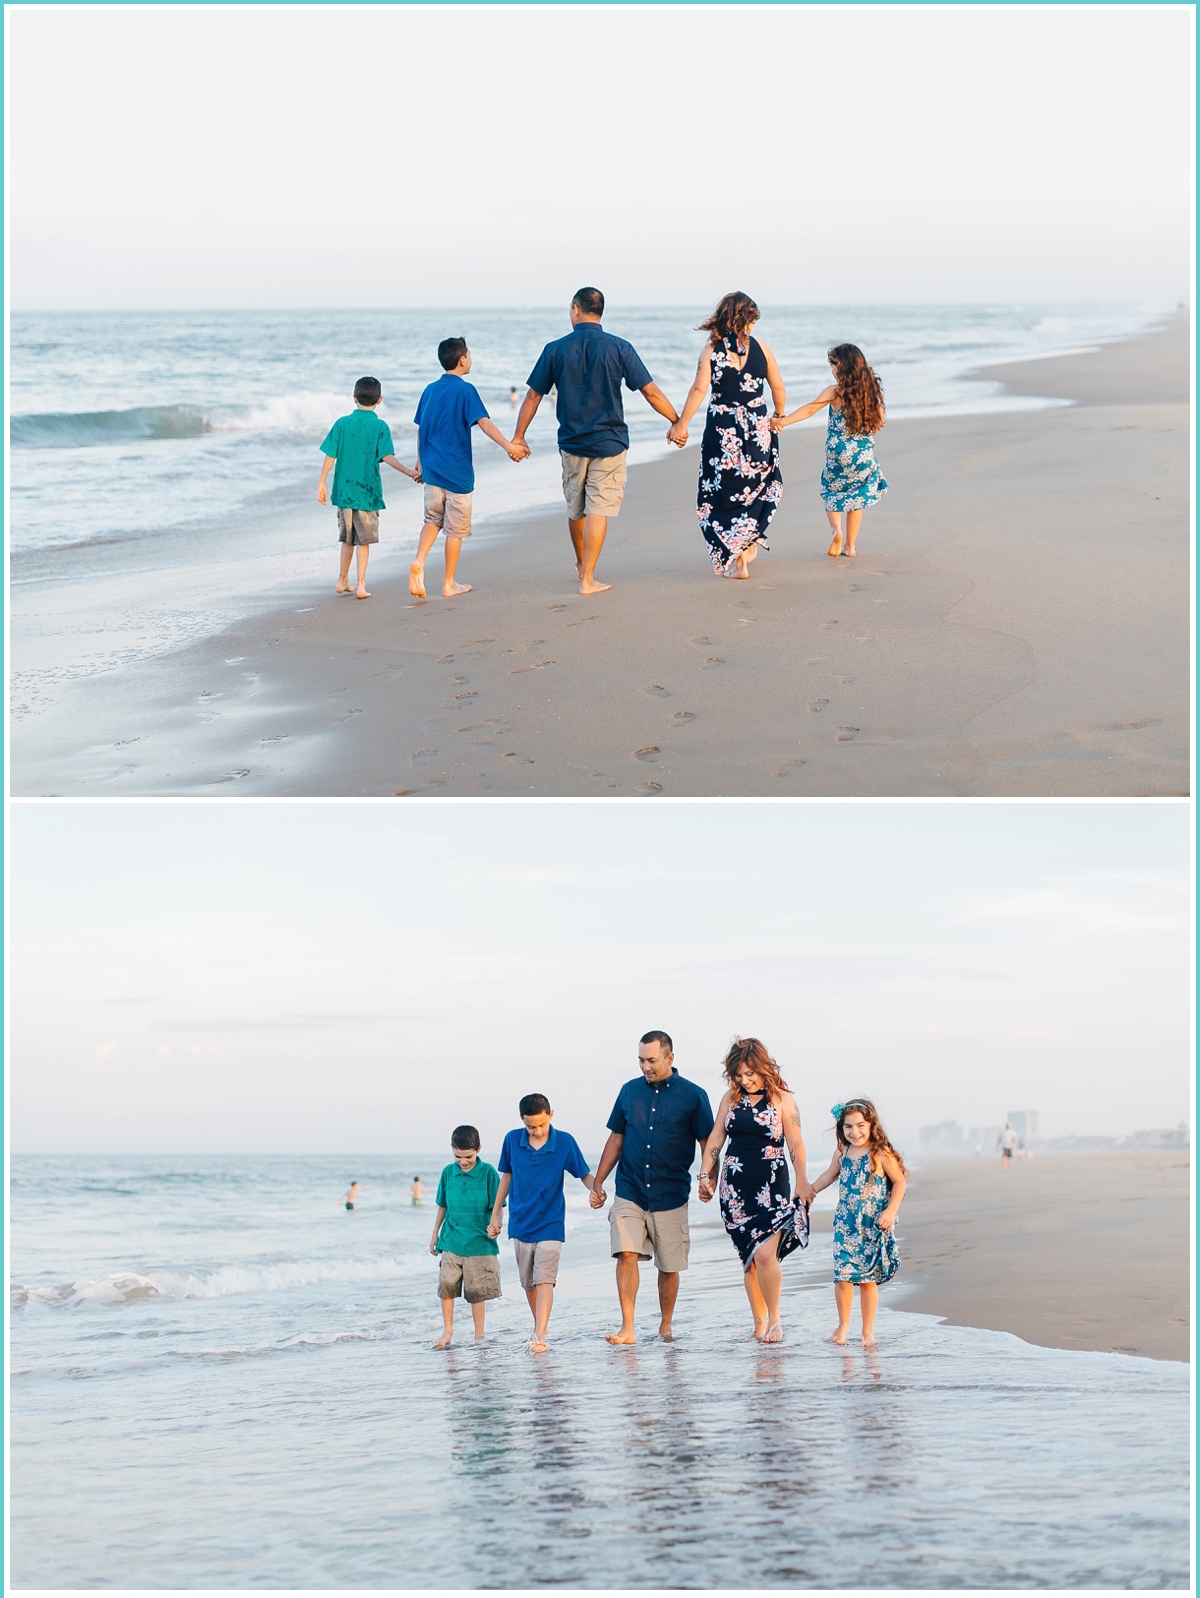 walking together on the beach